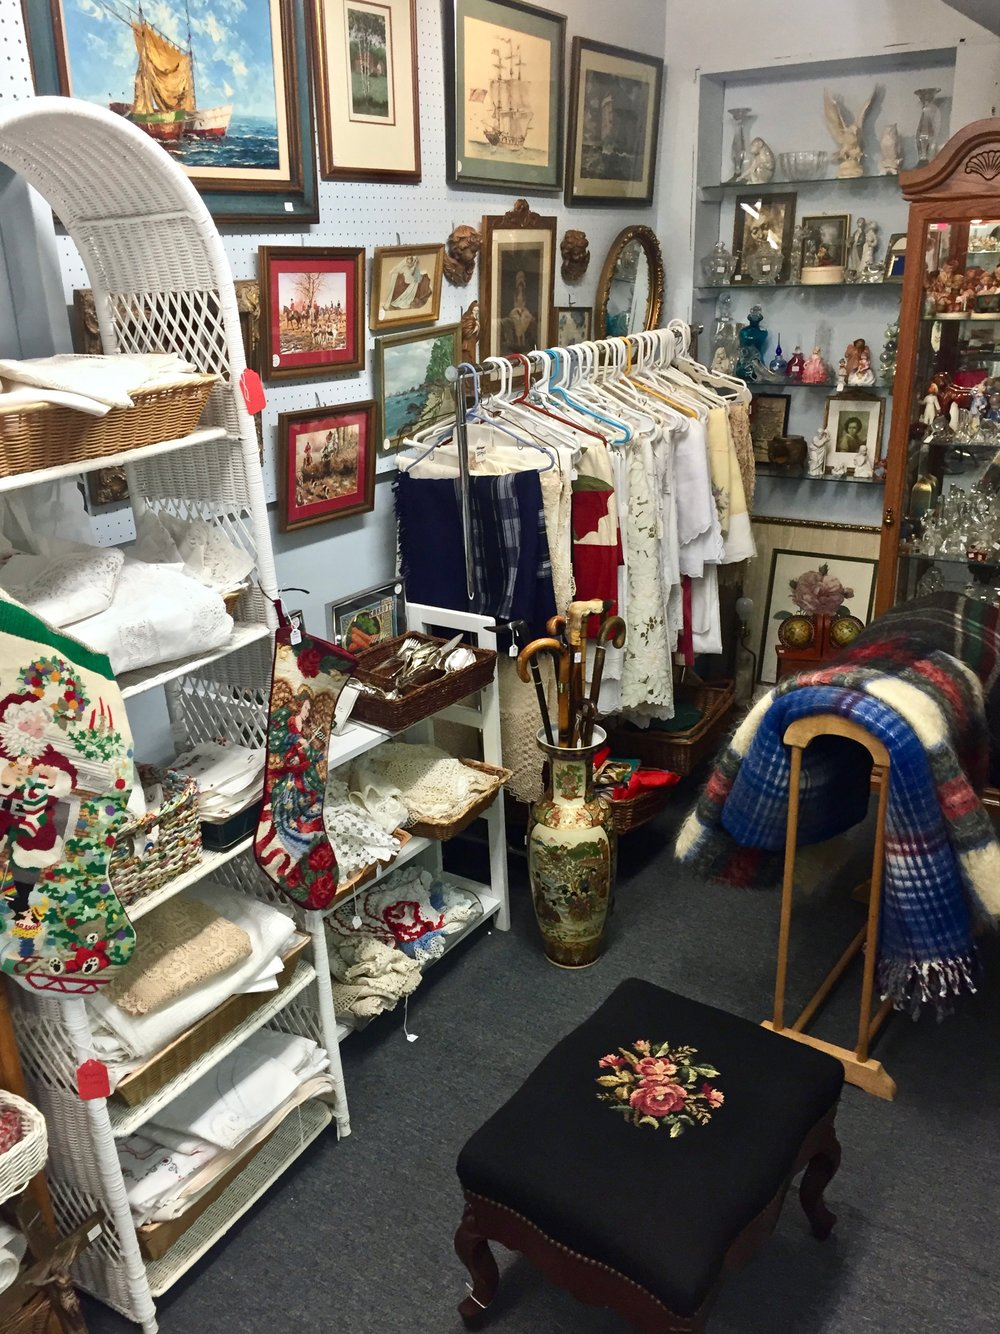 MARYANN NEWMAN ANTIQUES   For 40 years, Maryann Newman sold at antique shows throughout New York and New Jersey, specializing in linens, silver and jewelry. Many of her customer have now followed her to The Summit Antiques Center. She offers a varied selection to please everyone, and enjoy meeting a variety of people and helping them find just what they are looking for.